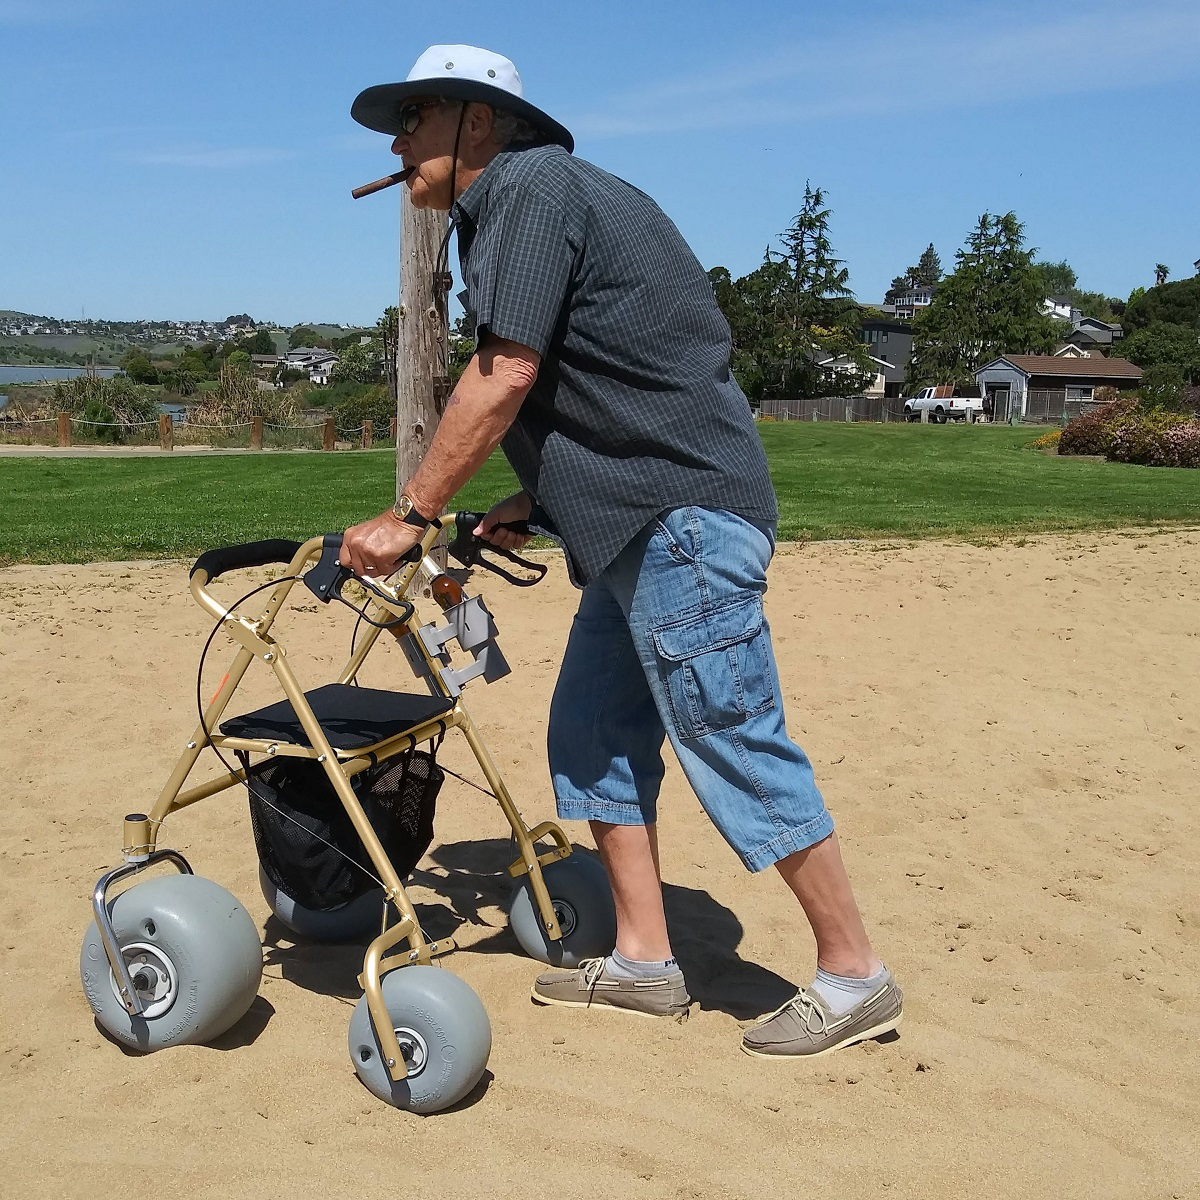 Enjoy accessing the soft sand with ease